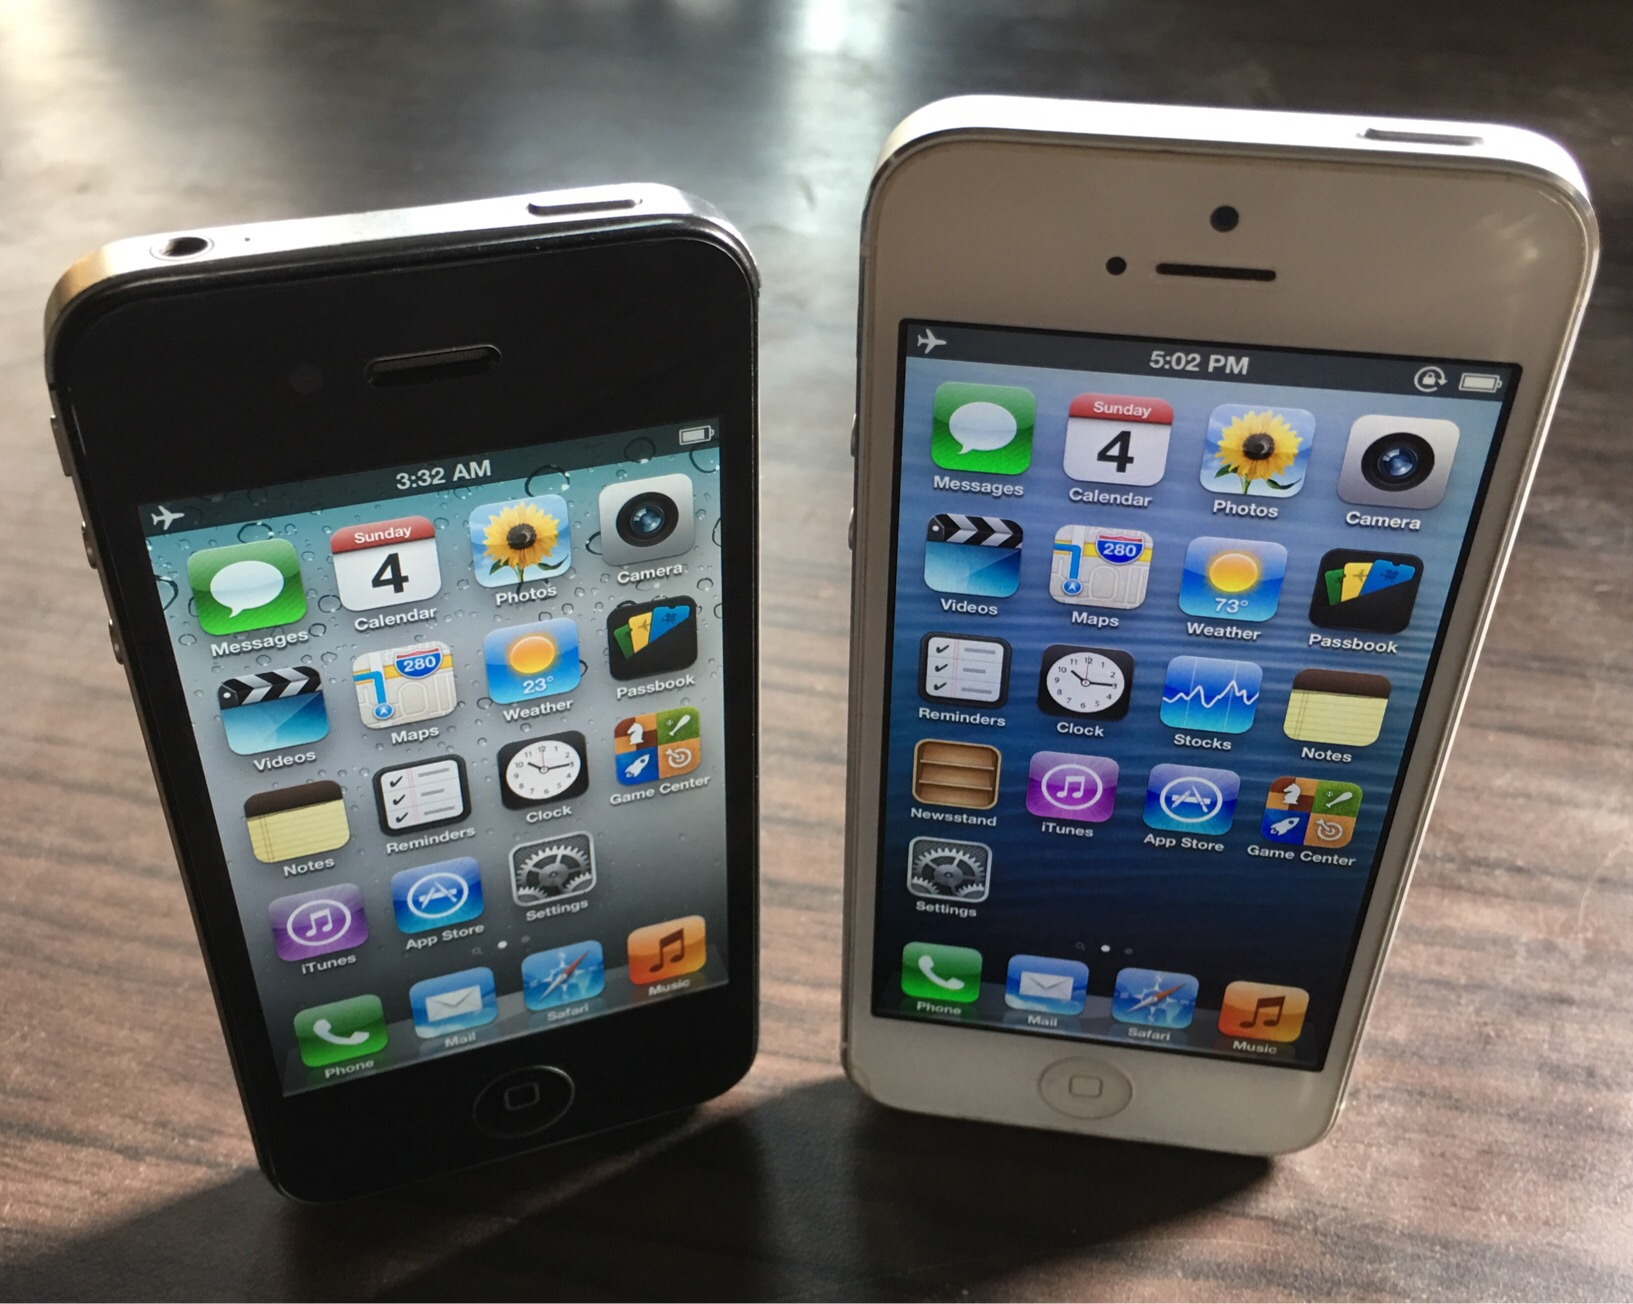 iPhone 5 or earlier - iPhone 4S/5 running iOS 6 in 2018 (End